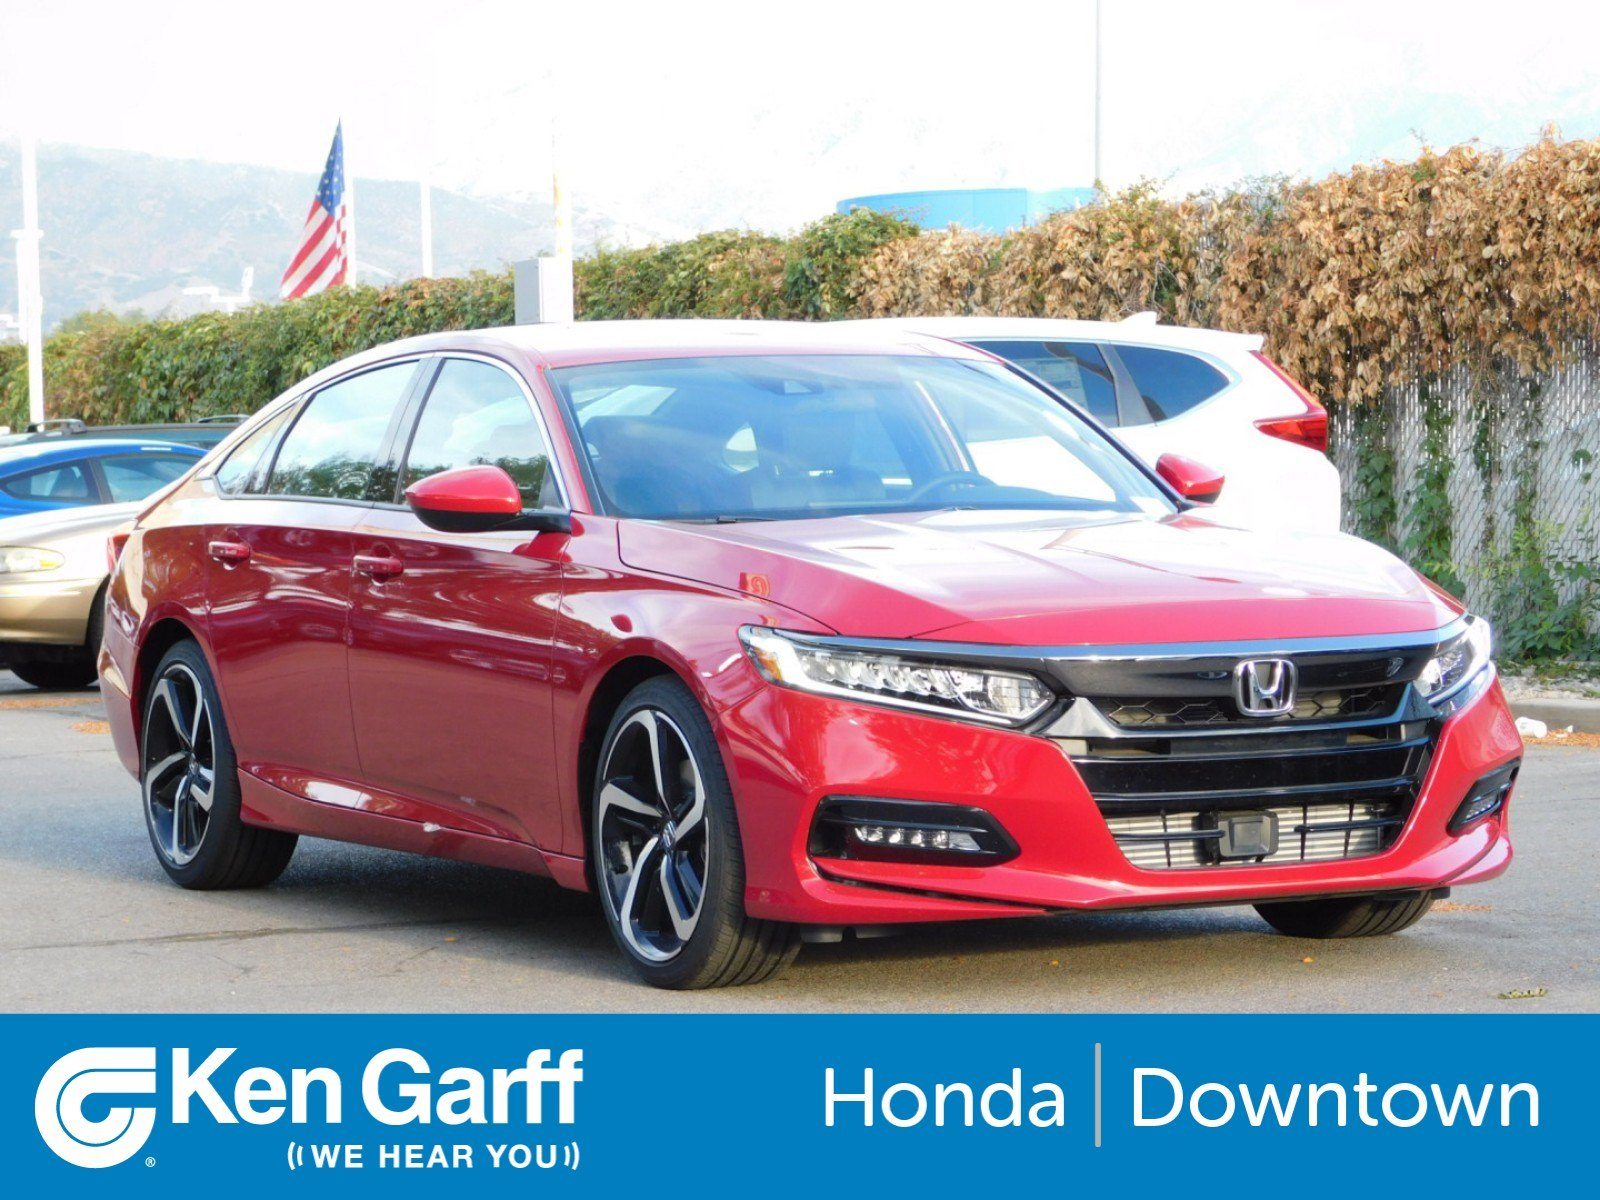 New 2018 Honda Accord Sedan Sport 15t 4dr Car In Salt Lake City 1990 Engine Performance Problem 4